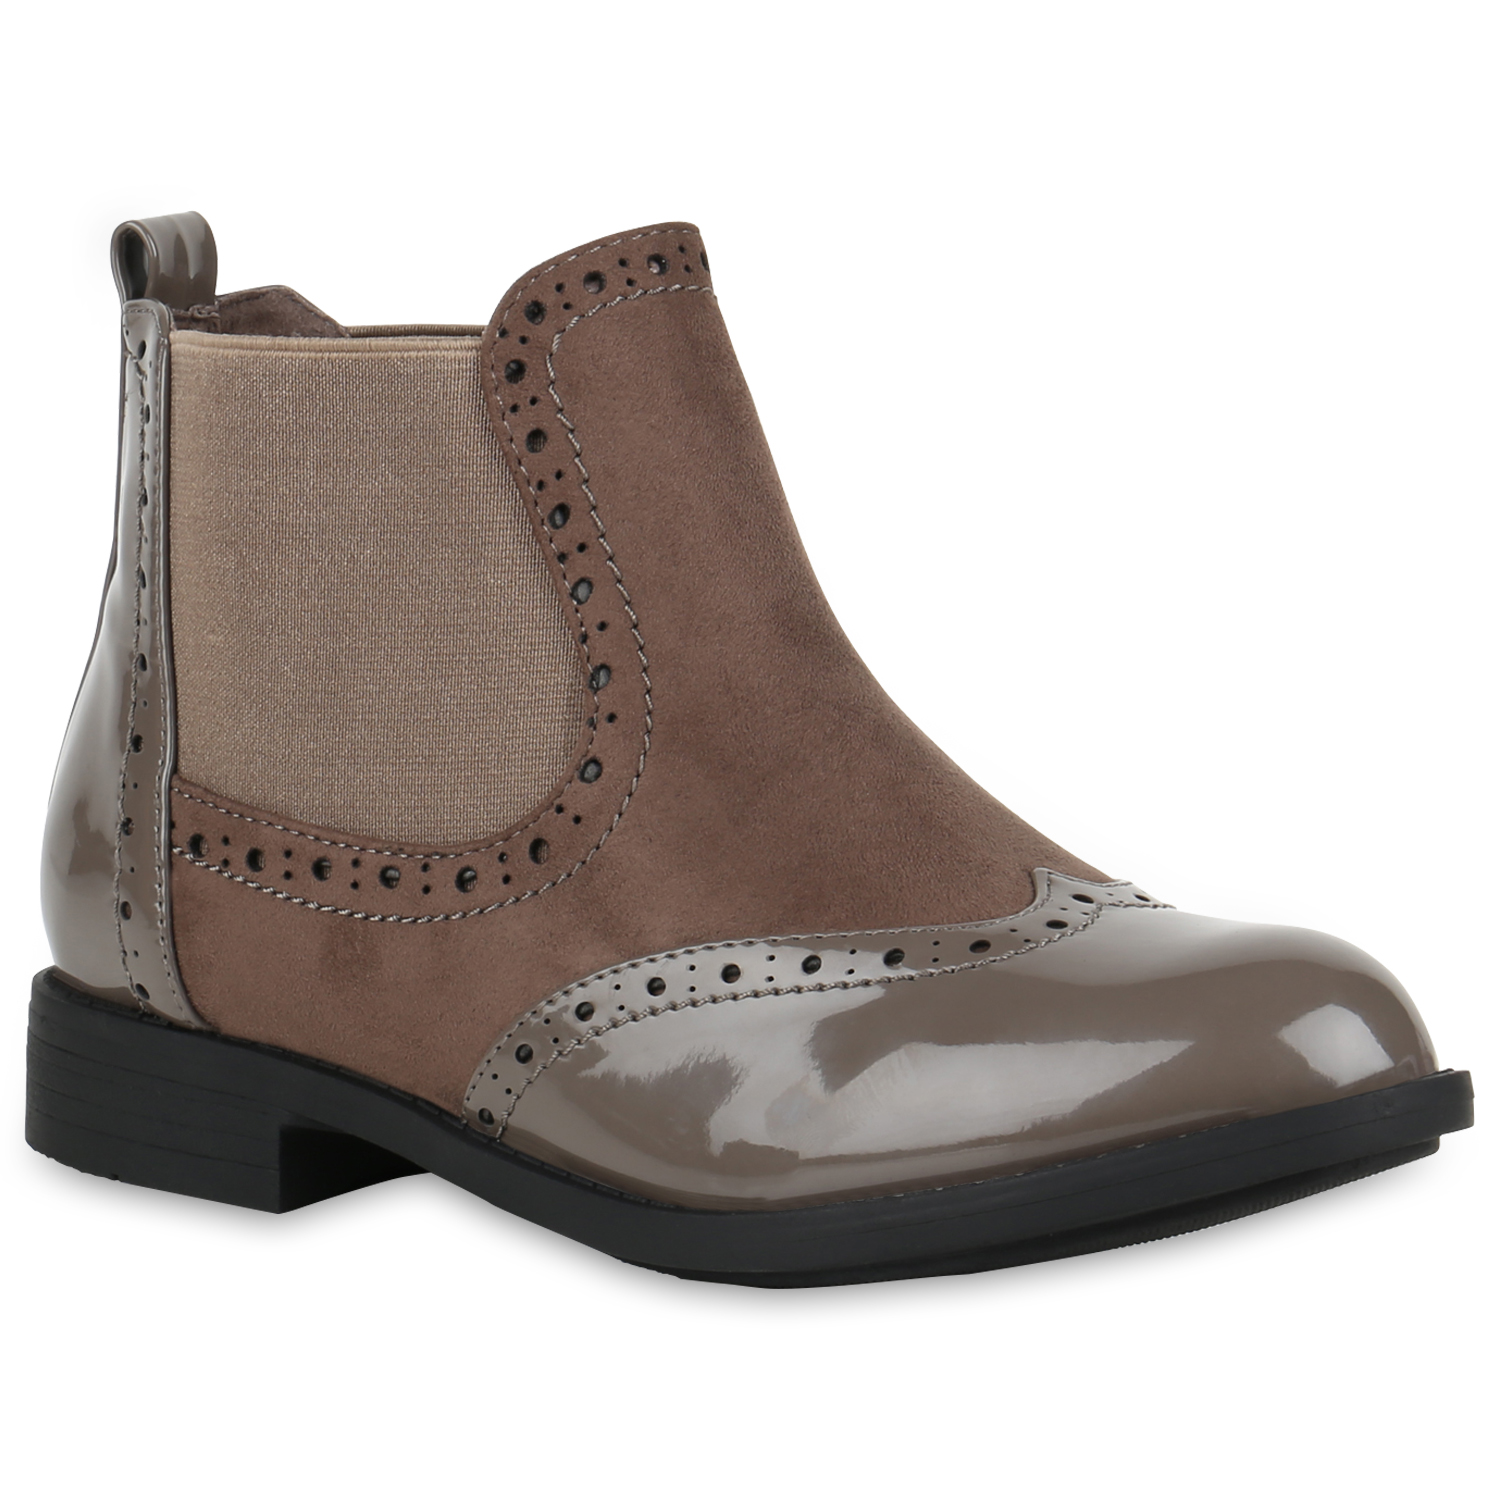 huge selection of f61d3 a99f5 Damen Stiefeletten Chelsea Boots - Taupe